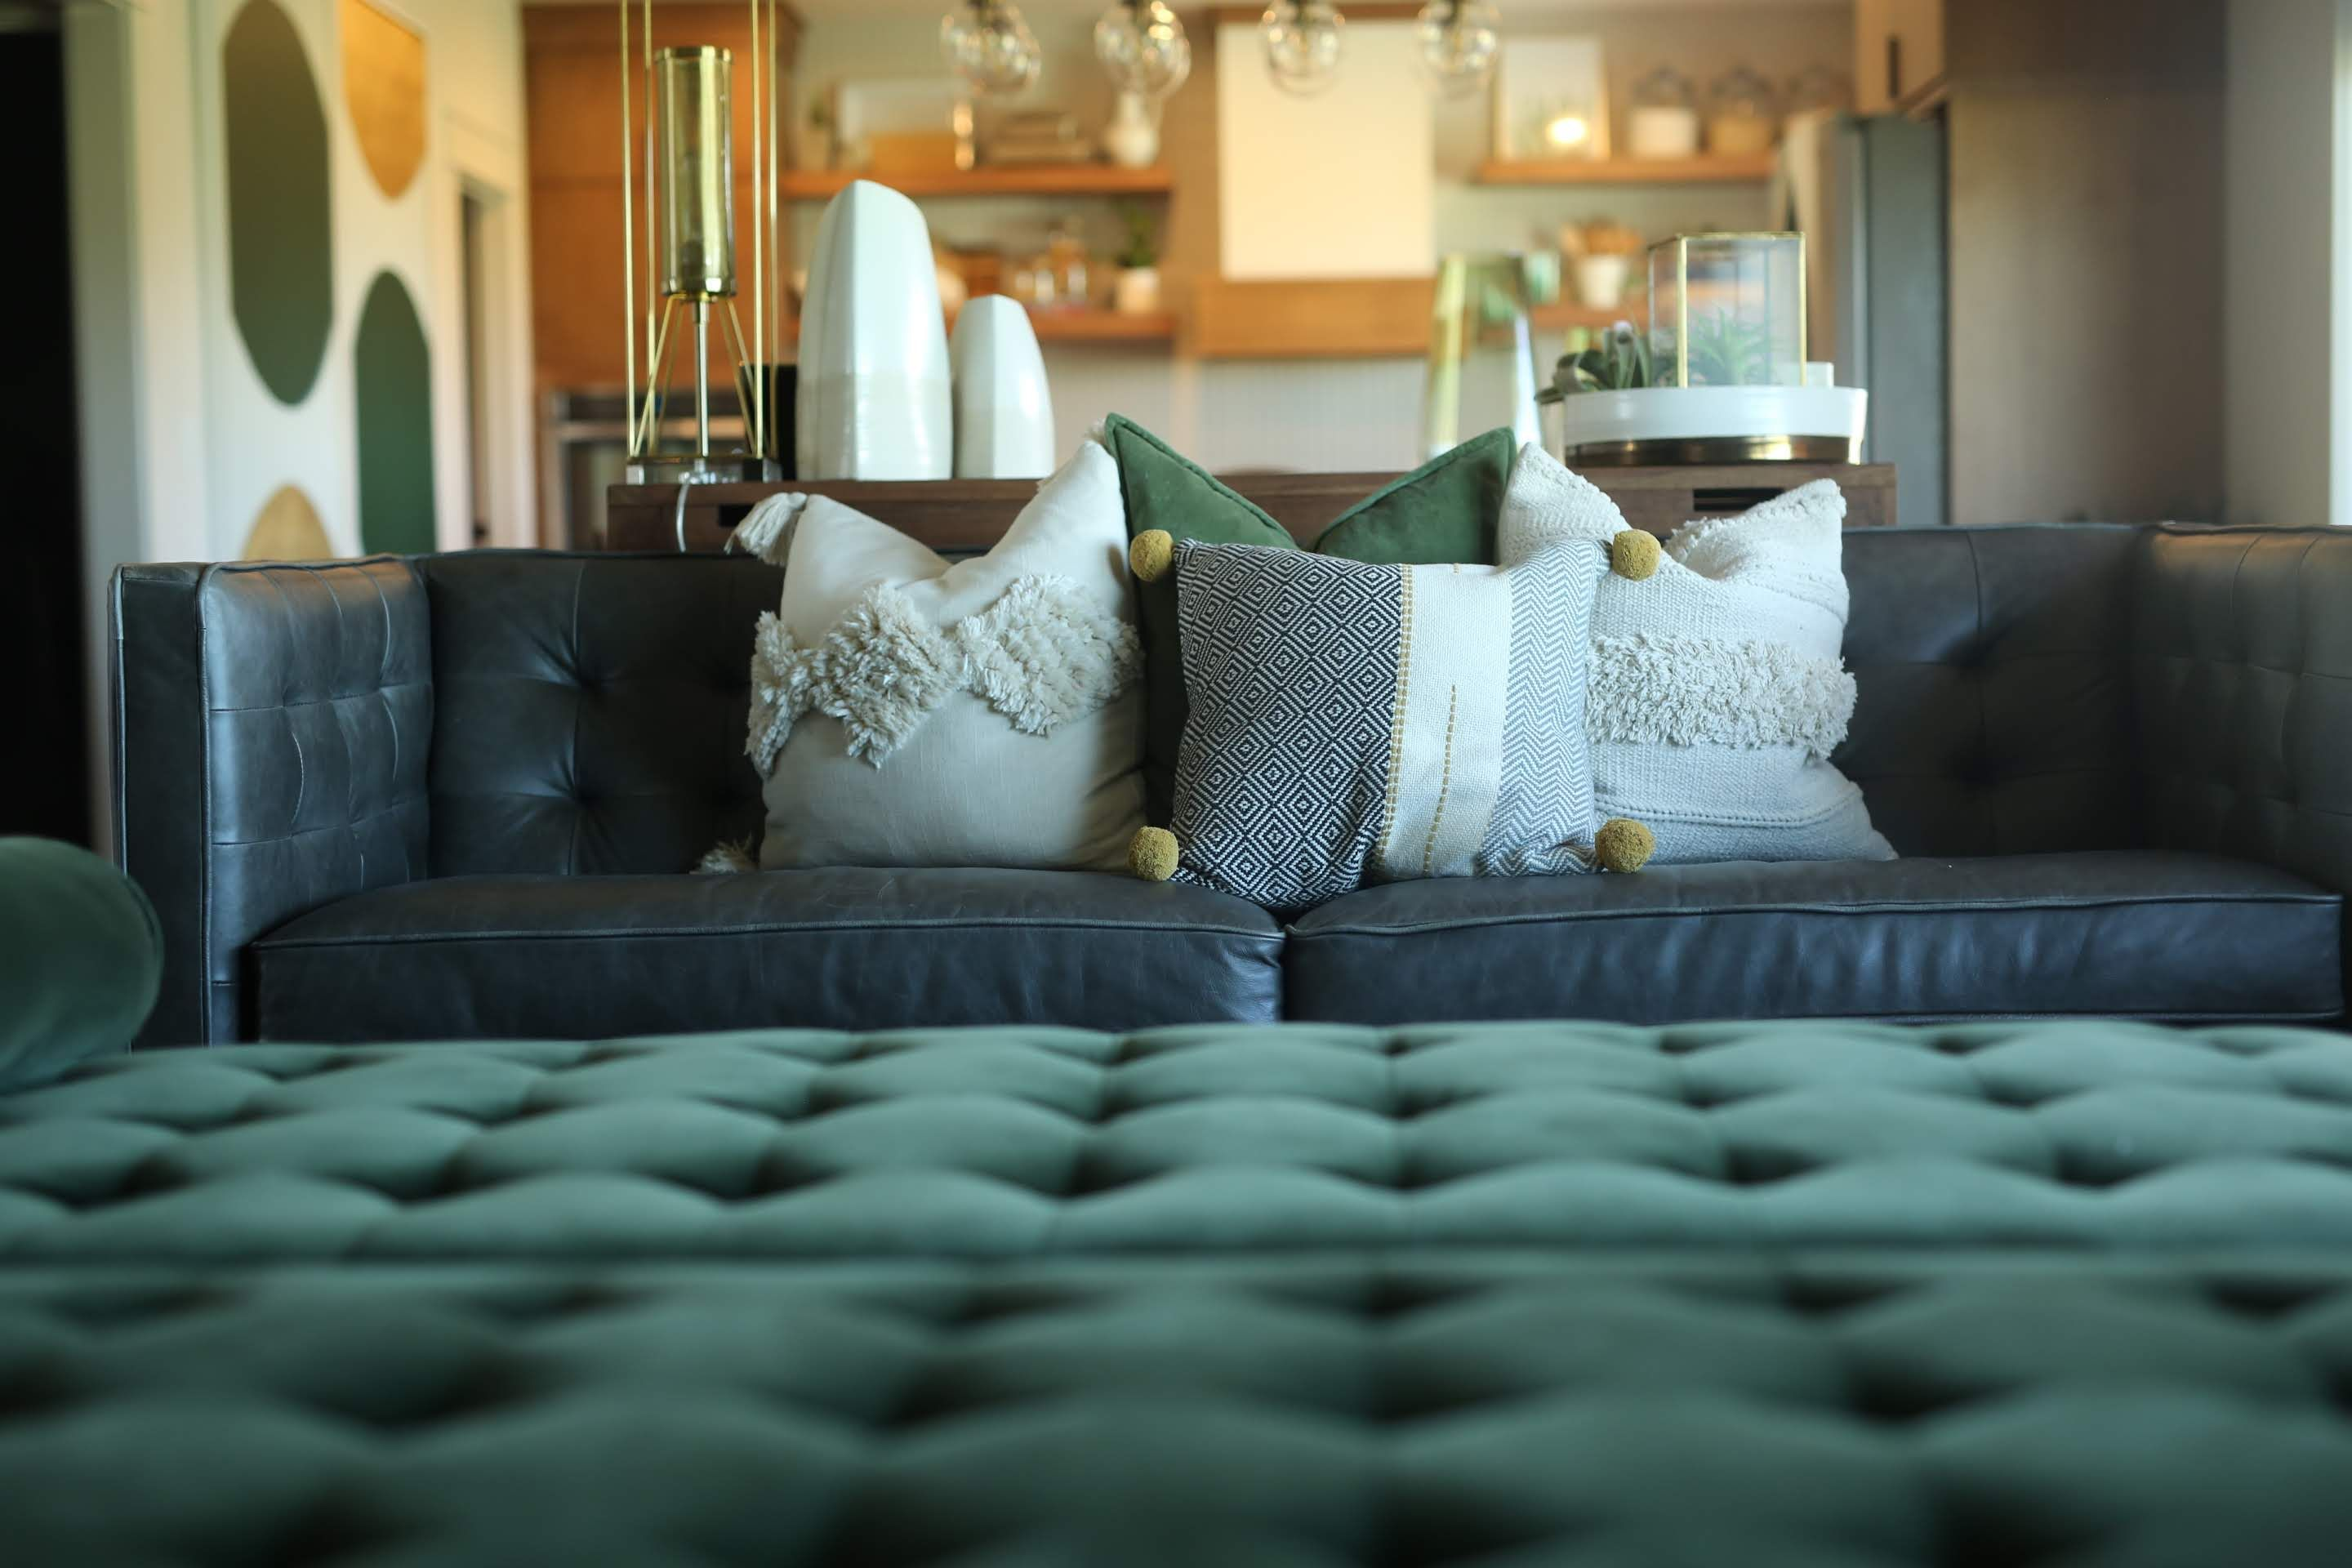 Find More Pieces Like These Featured Living Room Pieces At Fisher